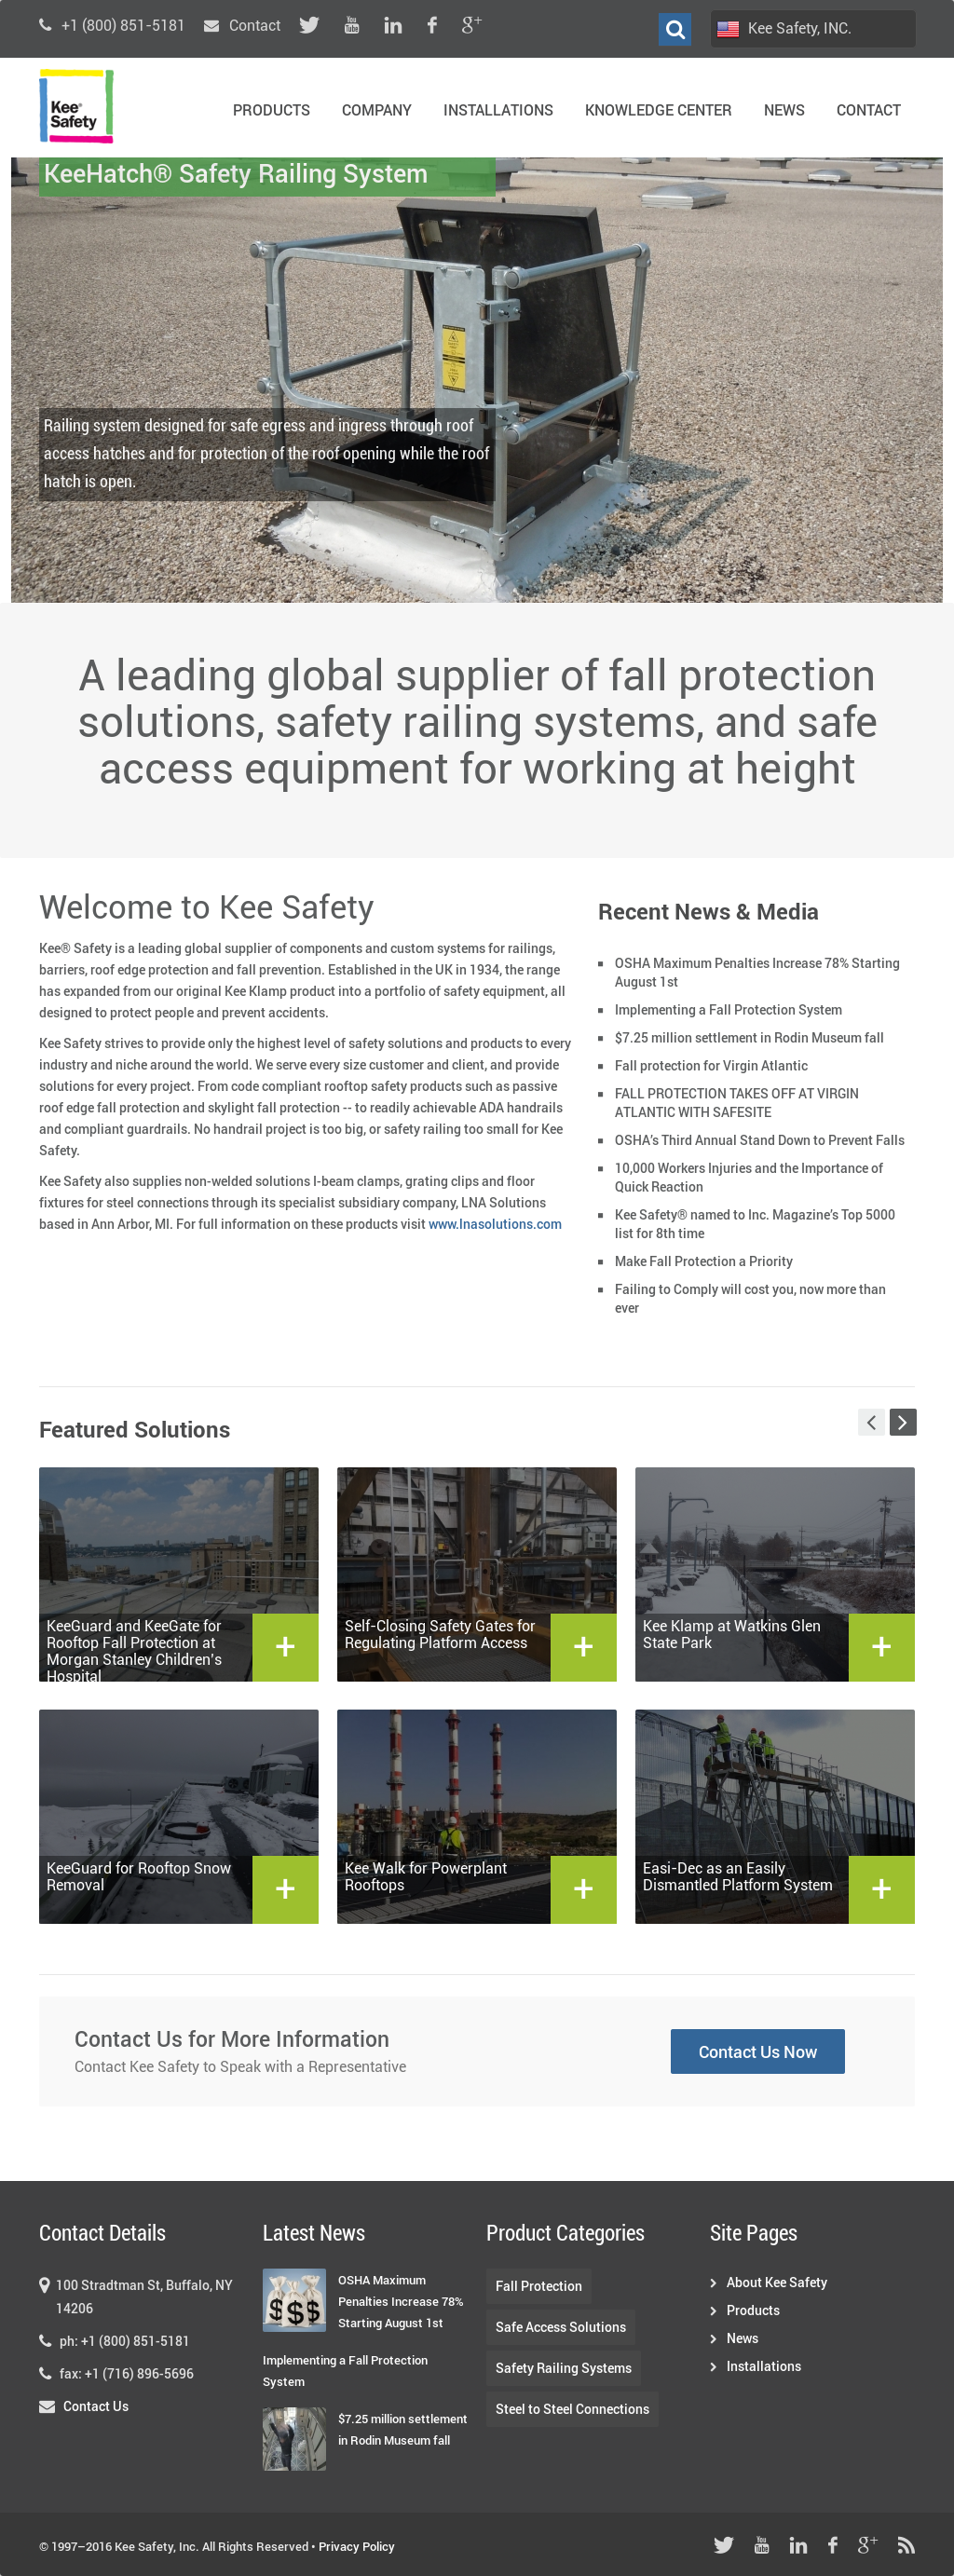 Kee Safety Competitors, Revenue and Employees - Owler